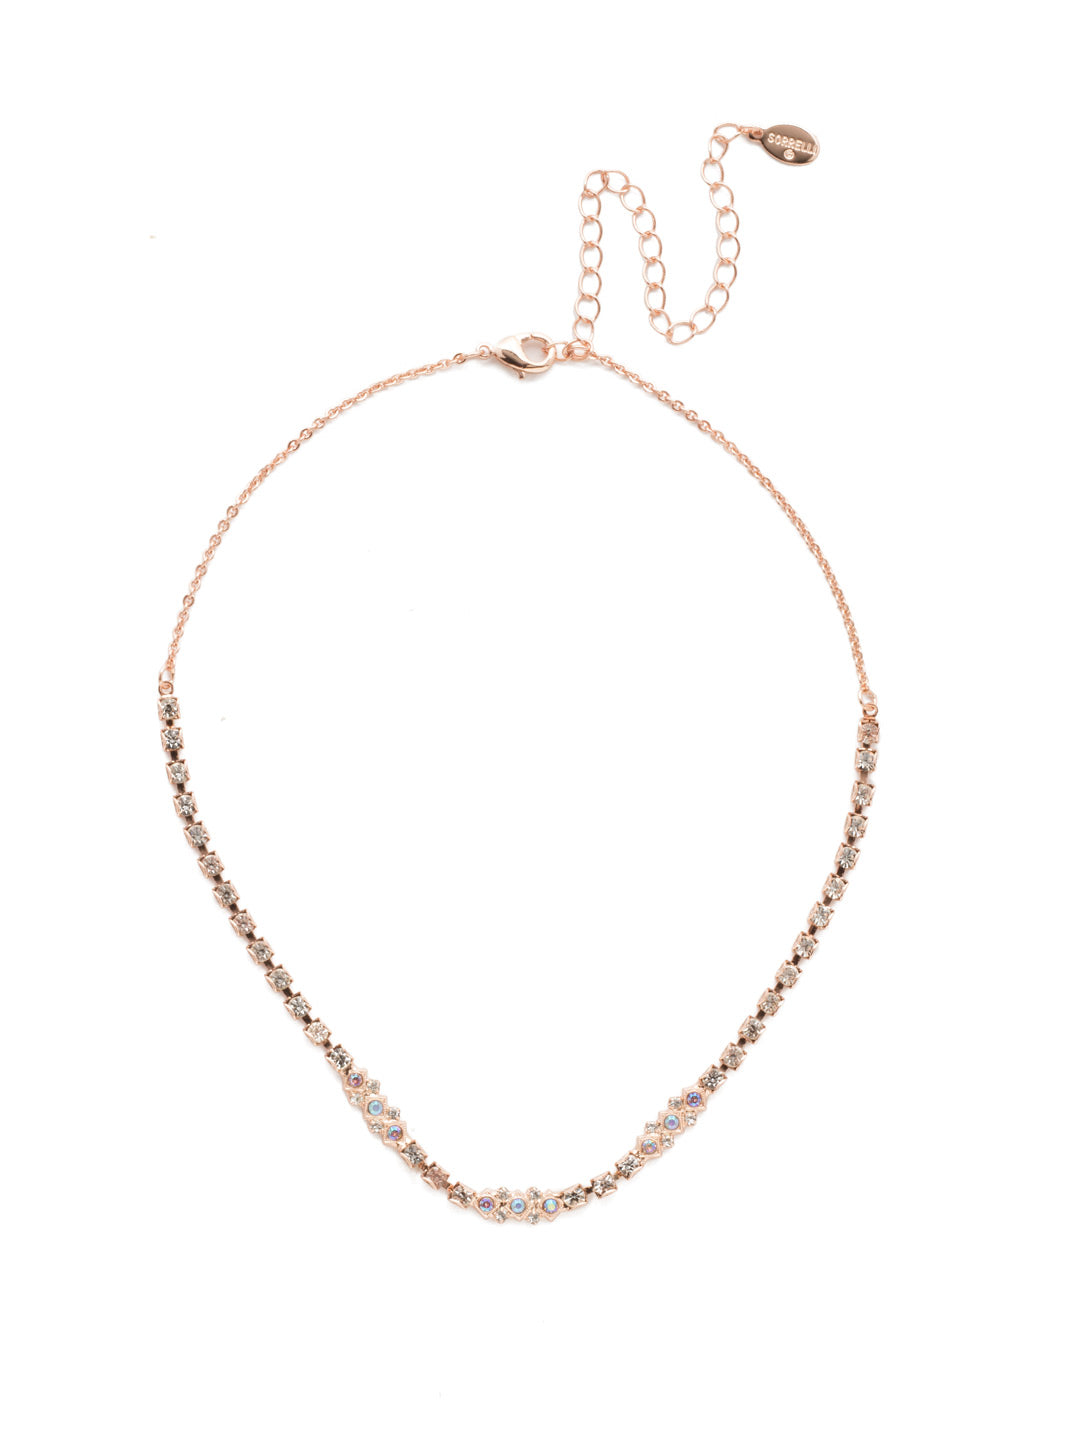 Jacqueline Tennis Necklace - NEN5RGROG